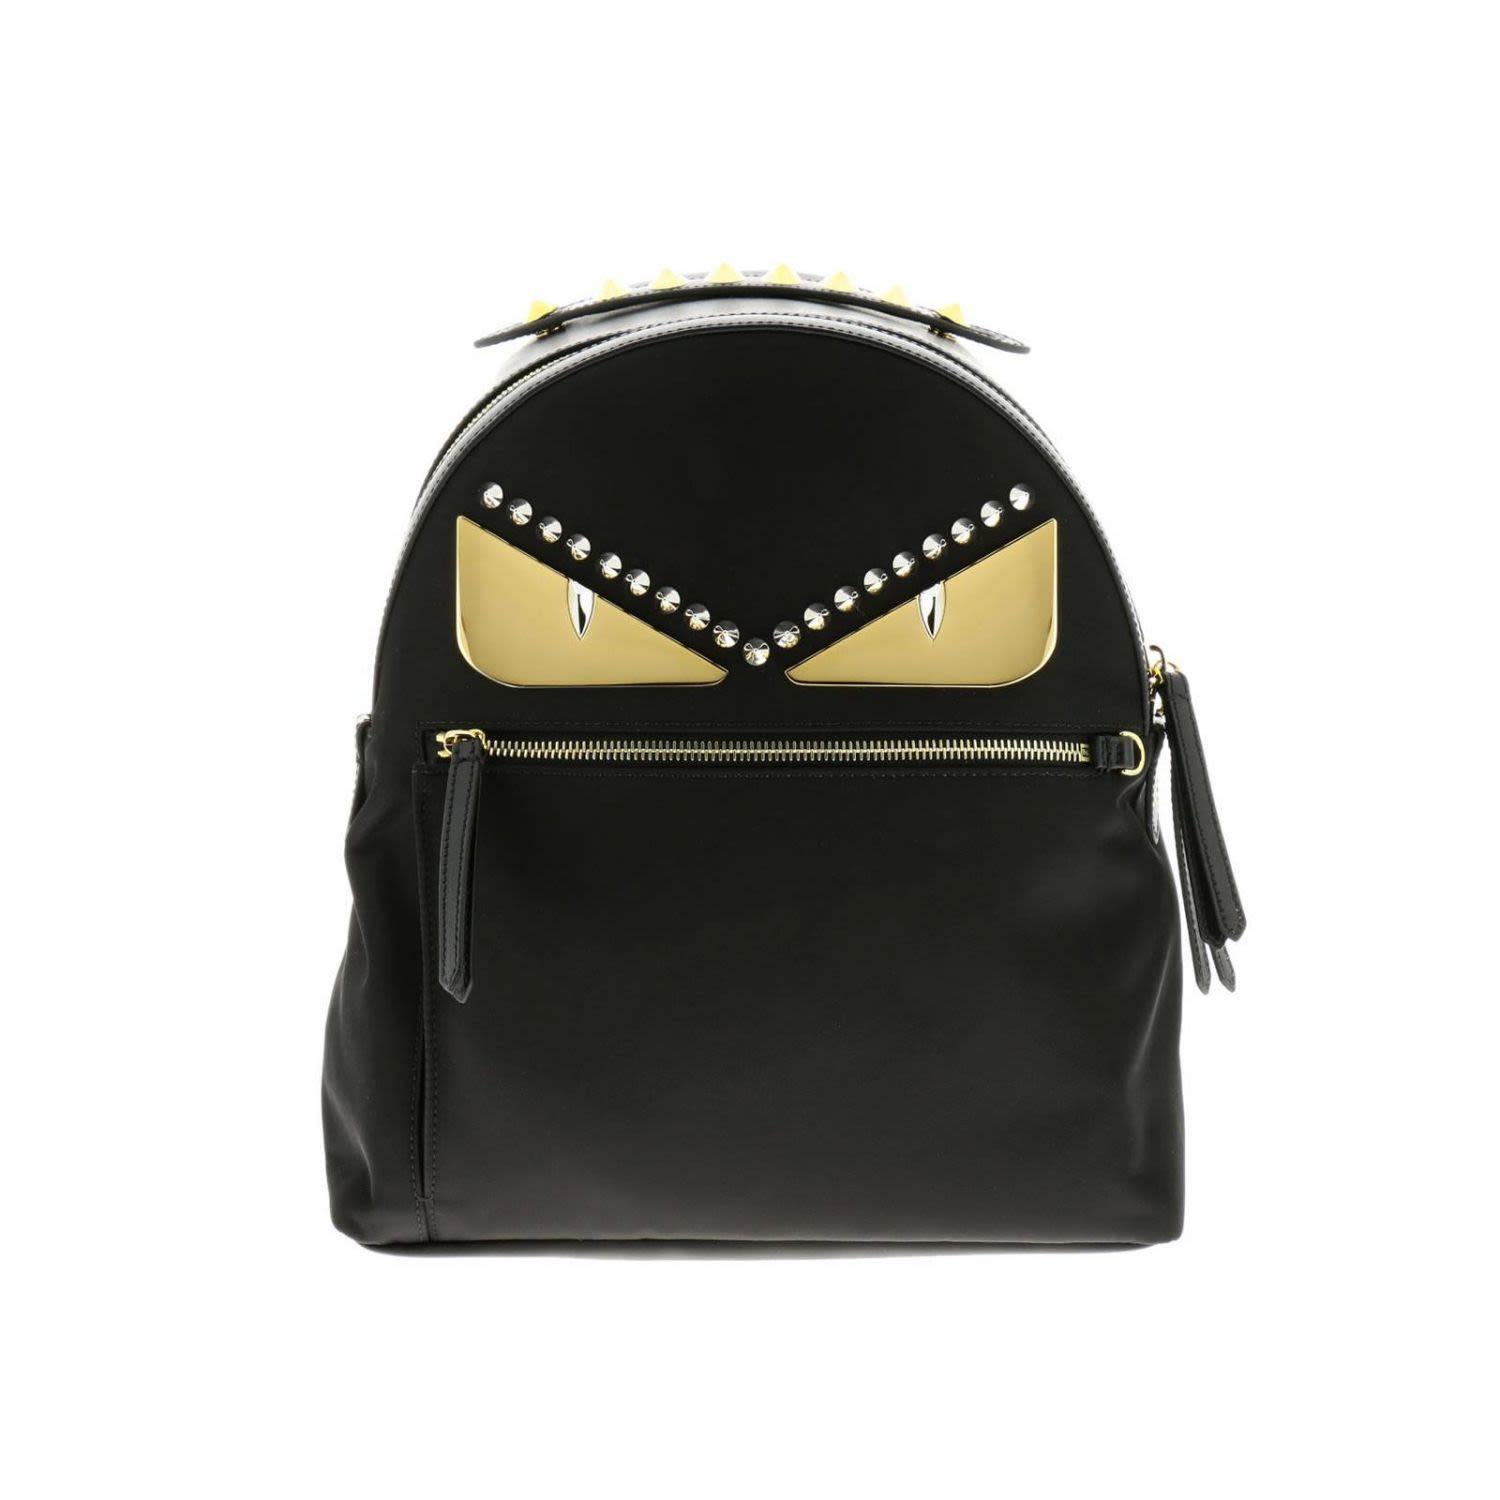 Fendi Backpack Fendi Monster Eyes Nylon And Leather Backpack With Bag Bugs Eyes Metal Patch